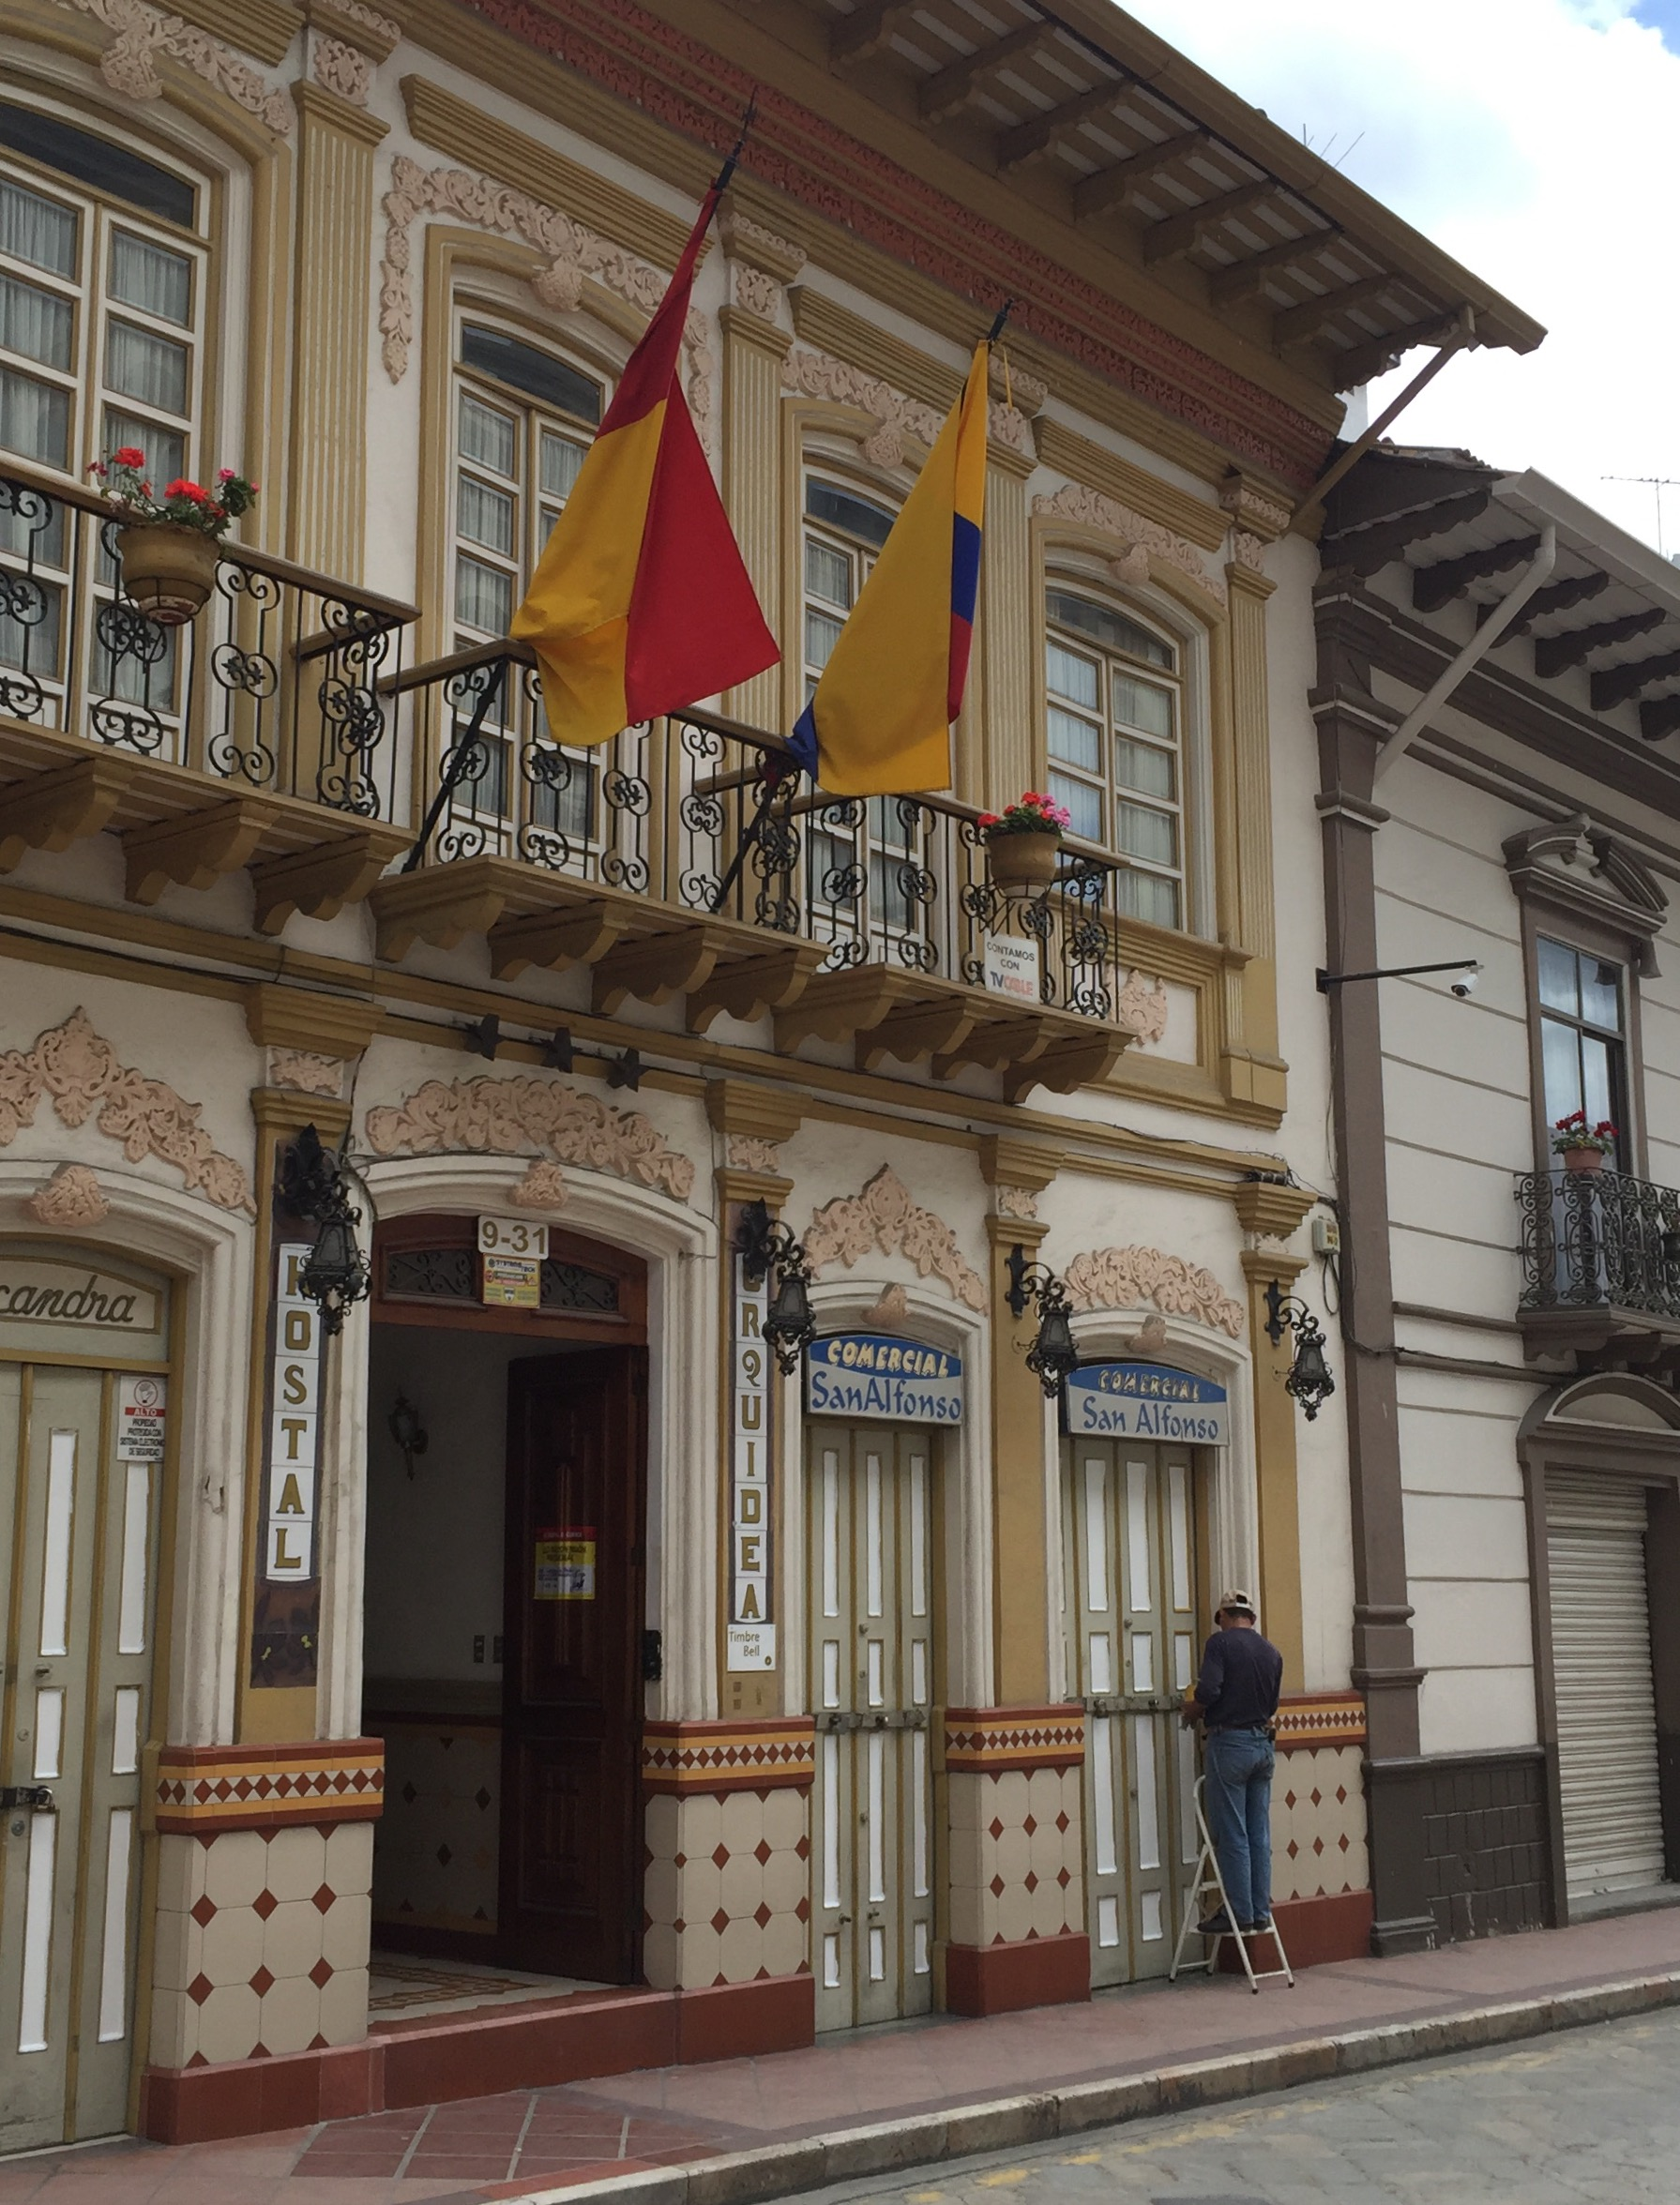 Typical architecture complete with tile front and wrote iron balcony in Cuenca, Ecuador.